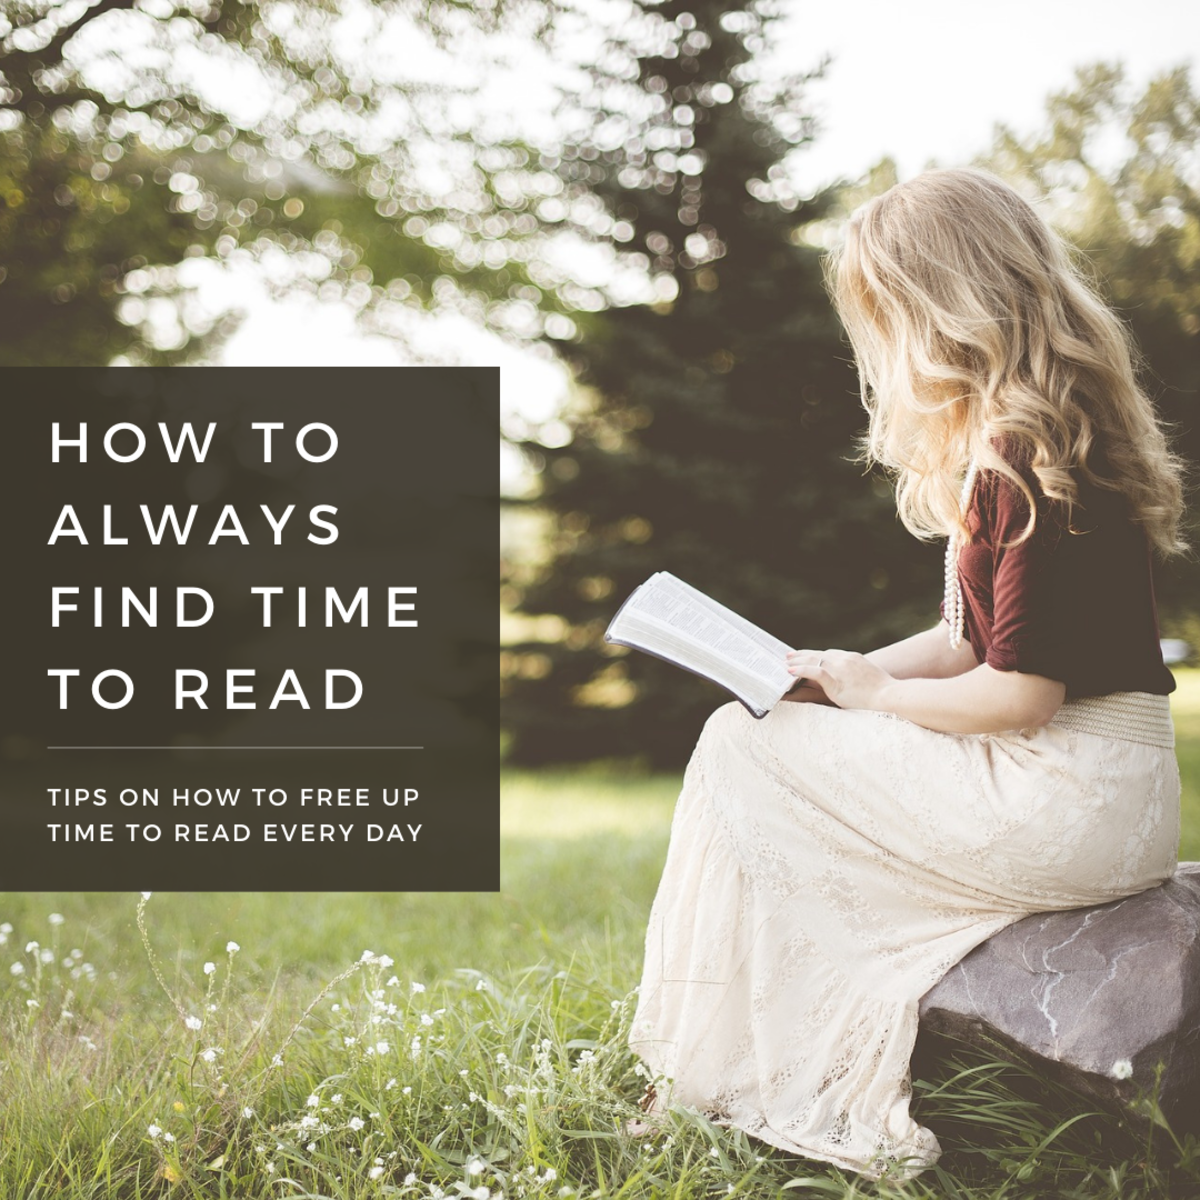 How to Always Find Time to Read